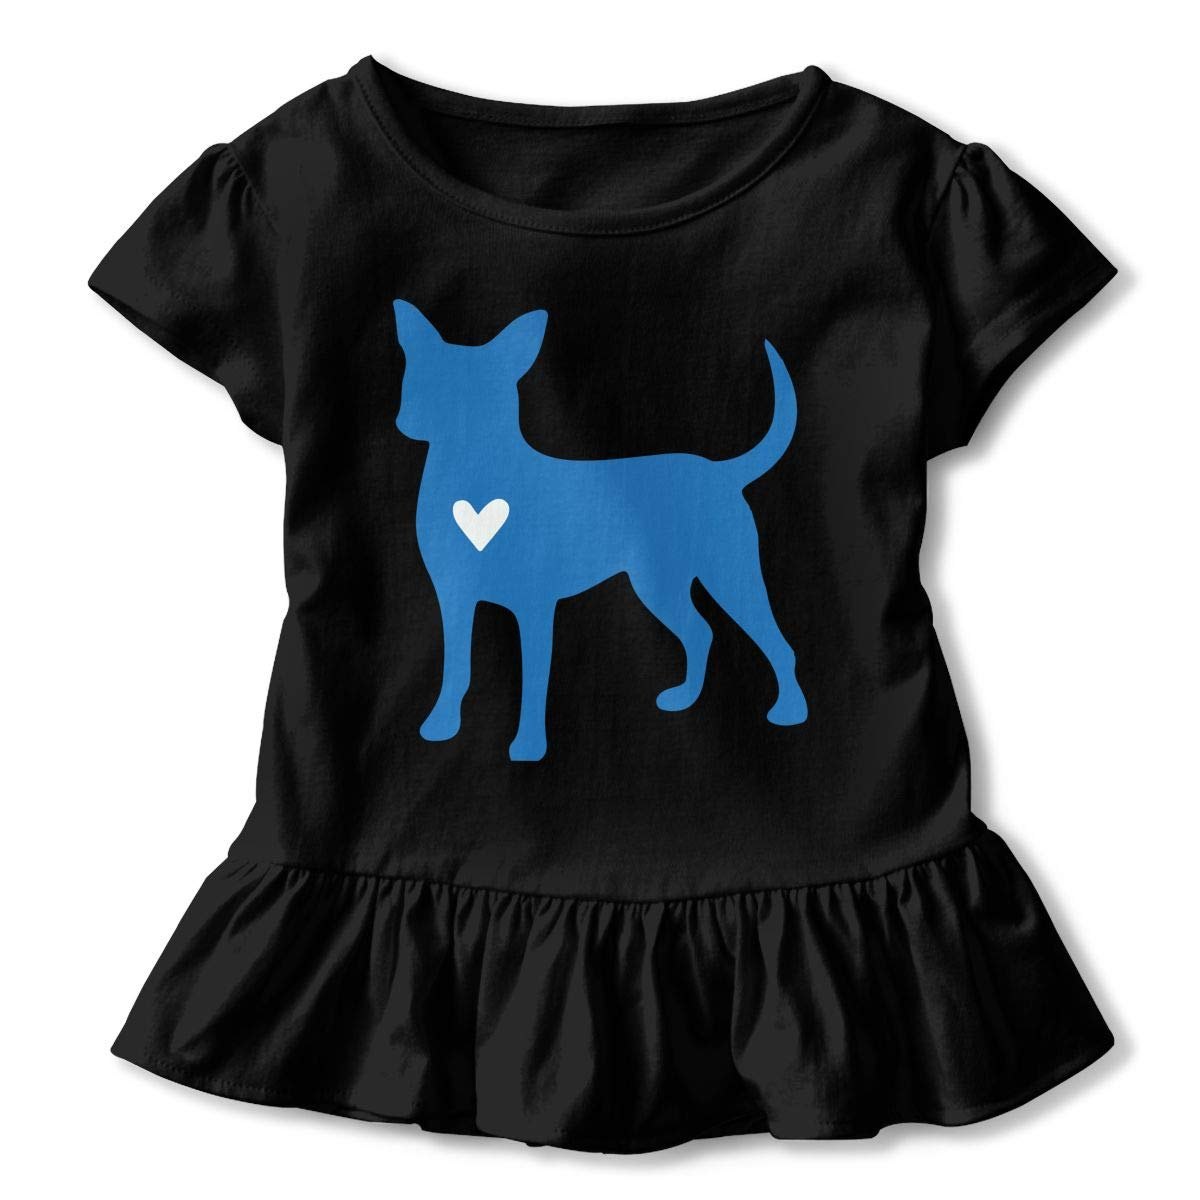 Toddler Baby Girl Chihuahua Clipart Silhouette Funny Short Sleeve Cotton T Shirts Basic Tops Tee Clothes